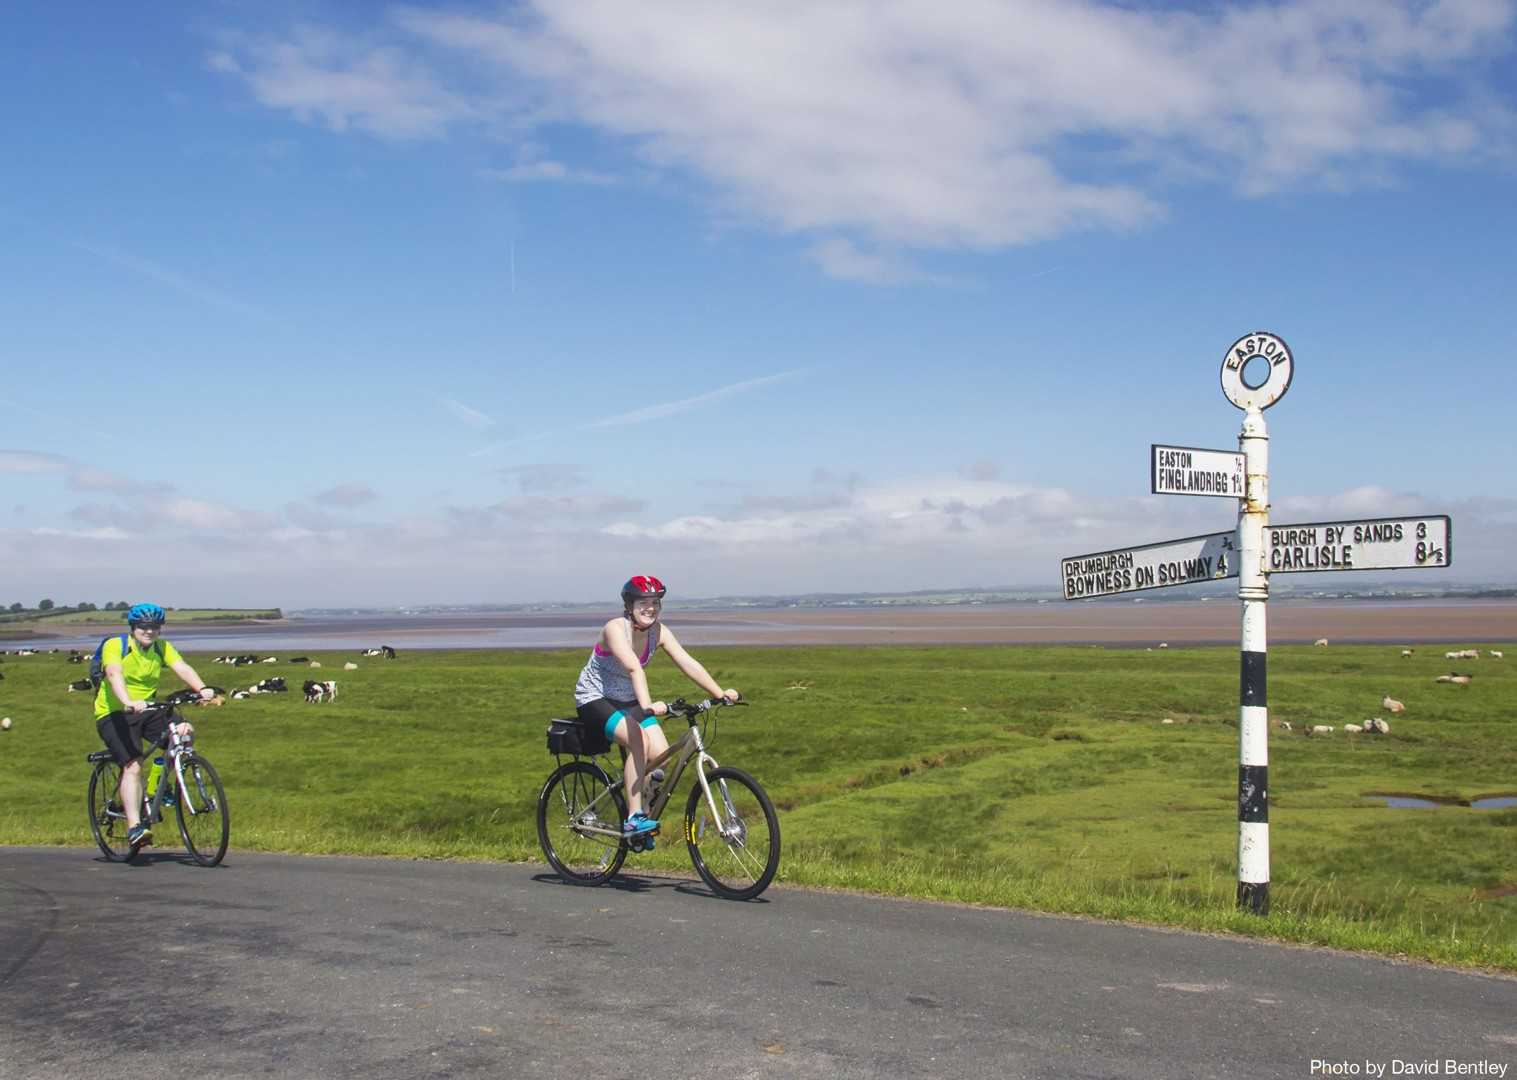 National-Cycle-Network-Hadrians-Cycleway-Self-Guided-Leisure-Cycling-Holiday.jpg - UK - Hadrian's Cycleway - 6 Days Cycling - Self-Guided Leisure Cycling Holiday - Leisure Cycling